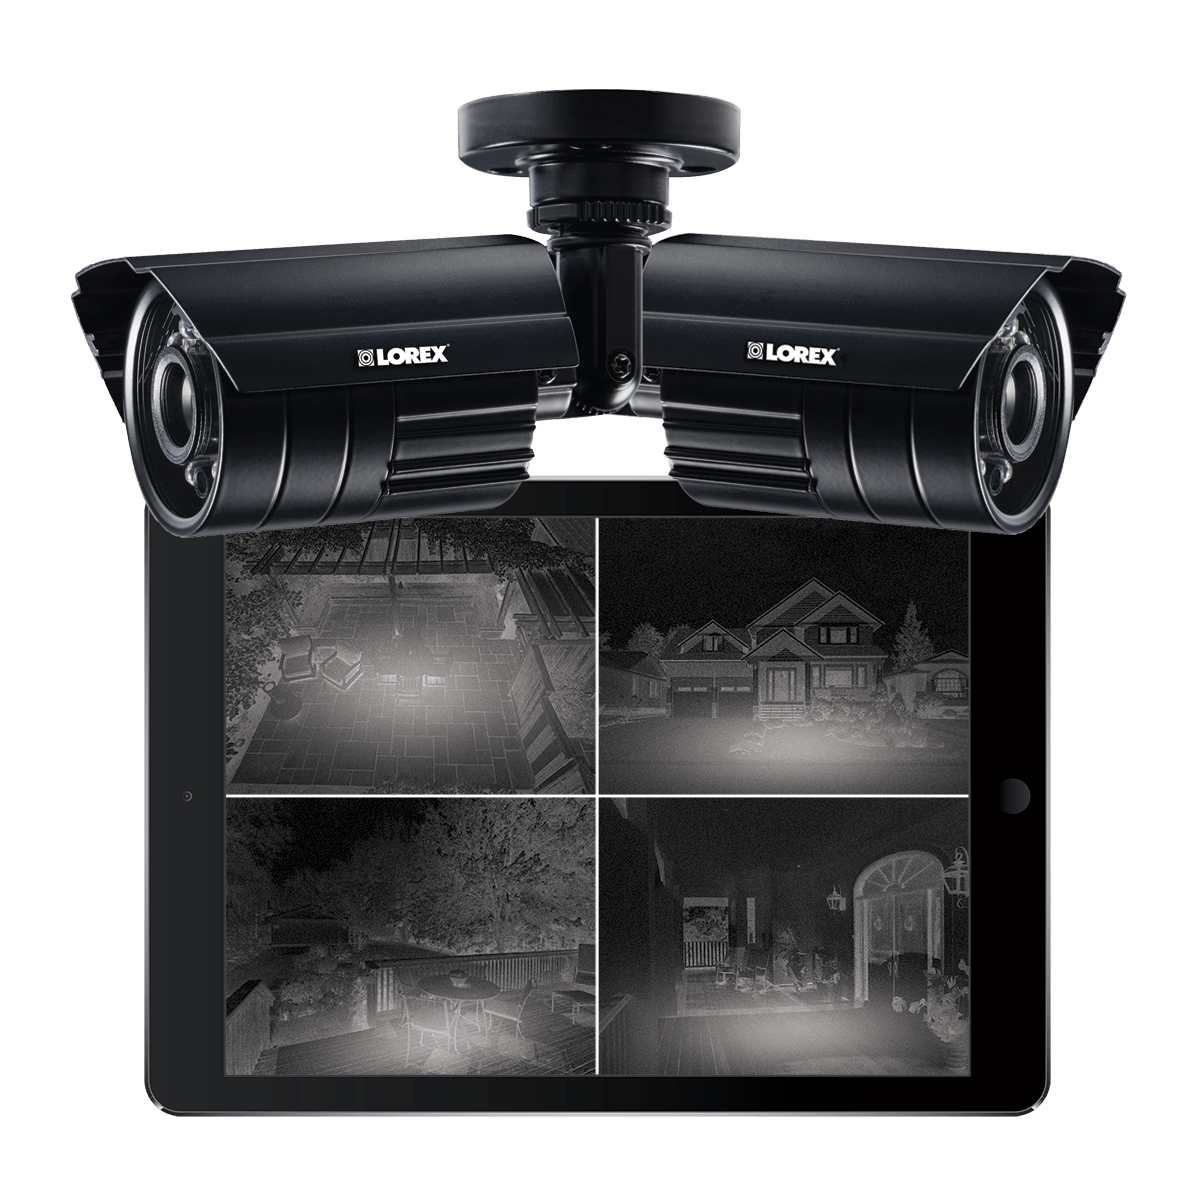 Black Firday security camera sale with Lorex night vision 900tvl secuirty cameras